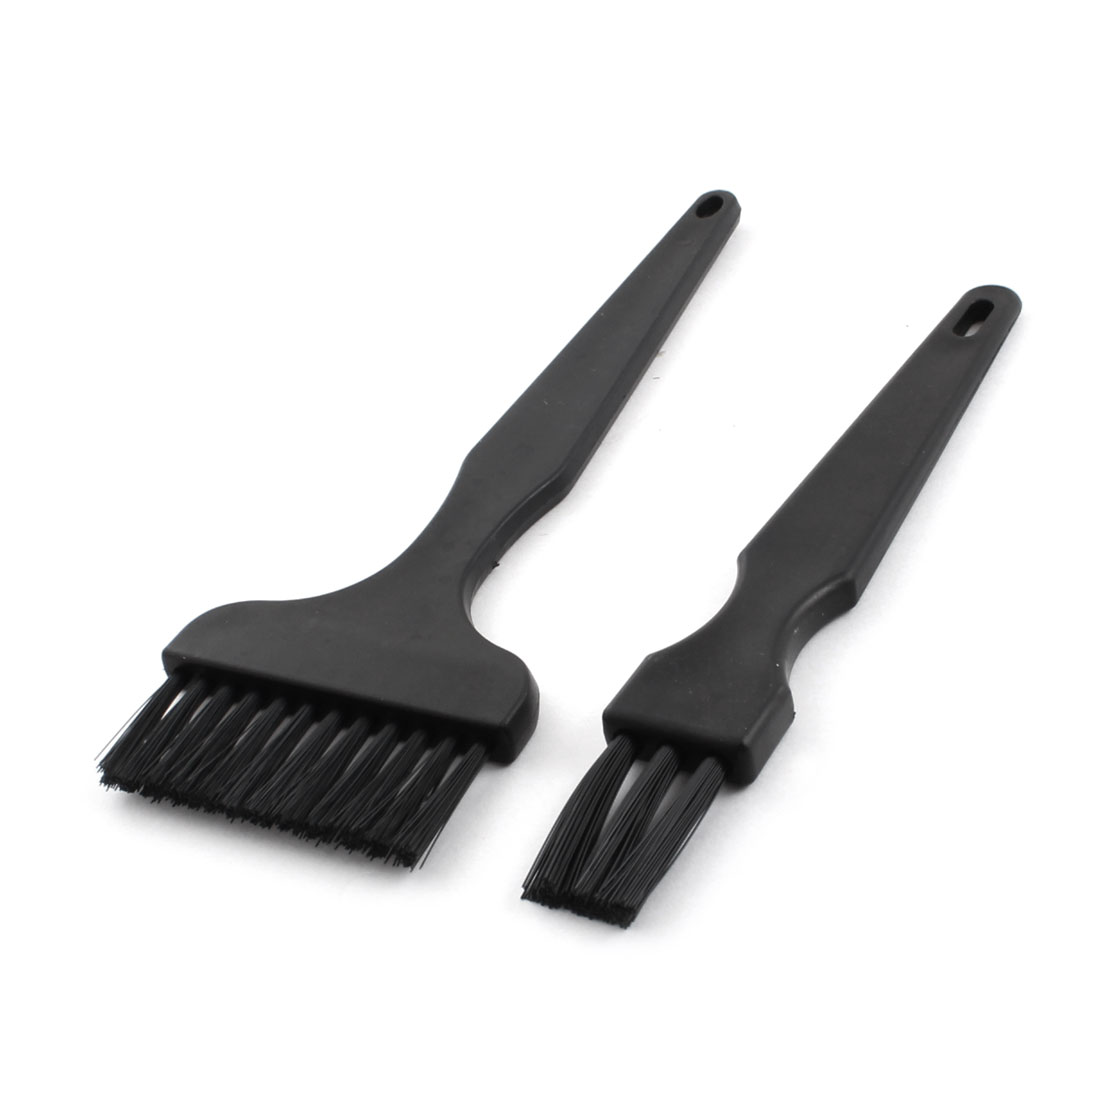 2 Pieces Black Plastic Handle Conductive Ground ESD Anti Static Brush Combo